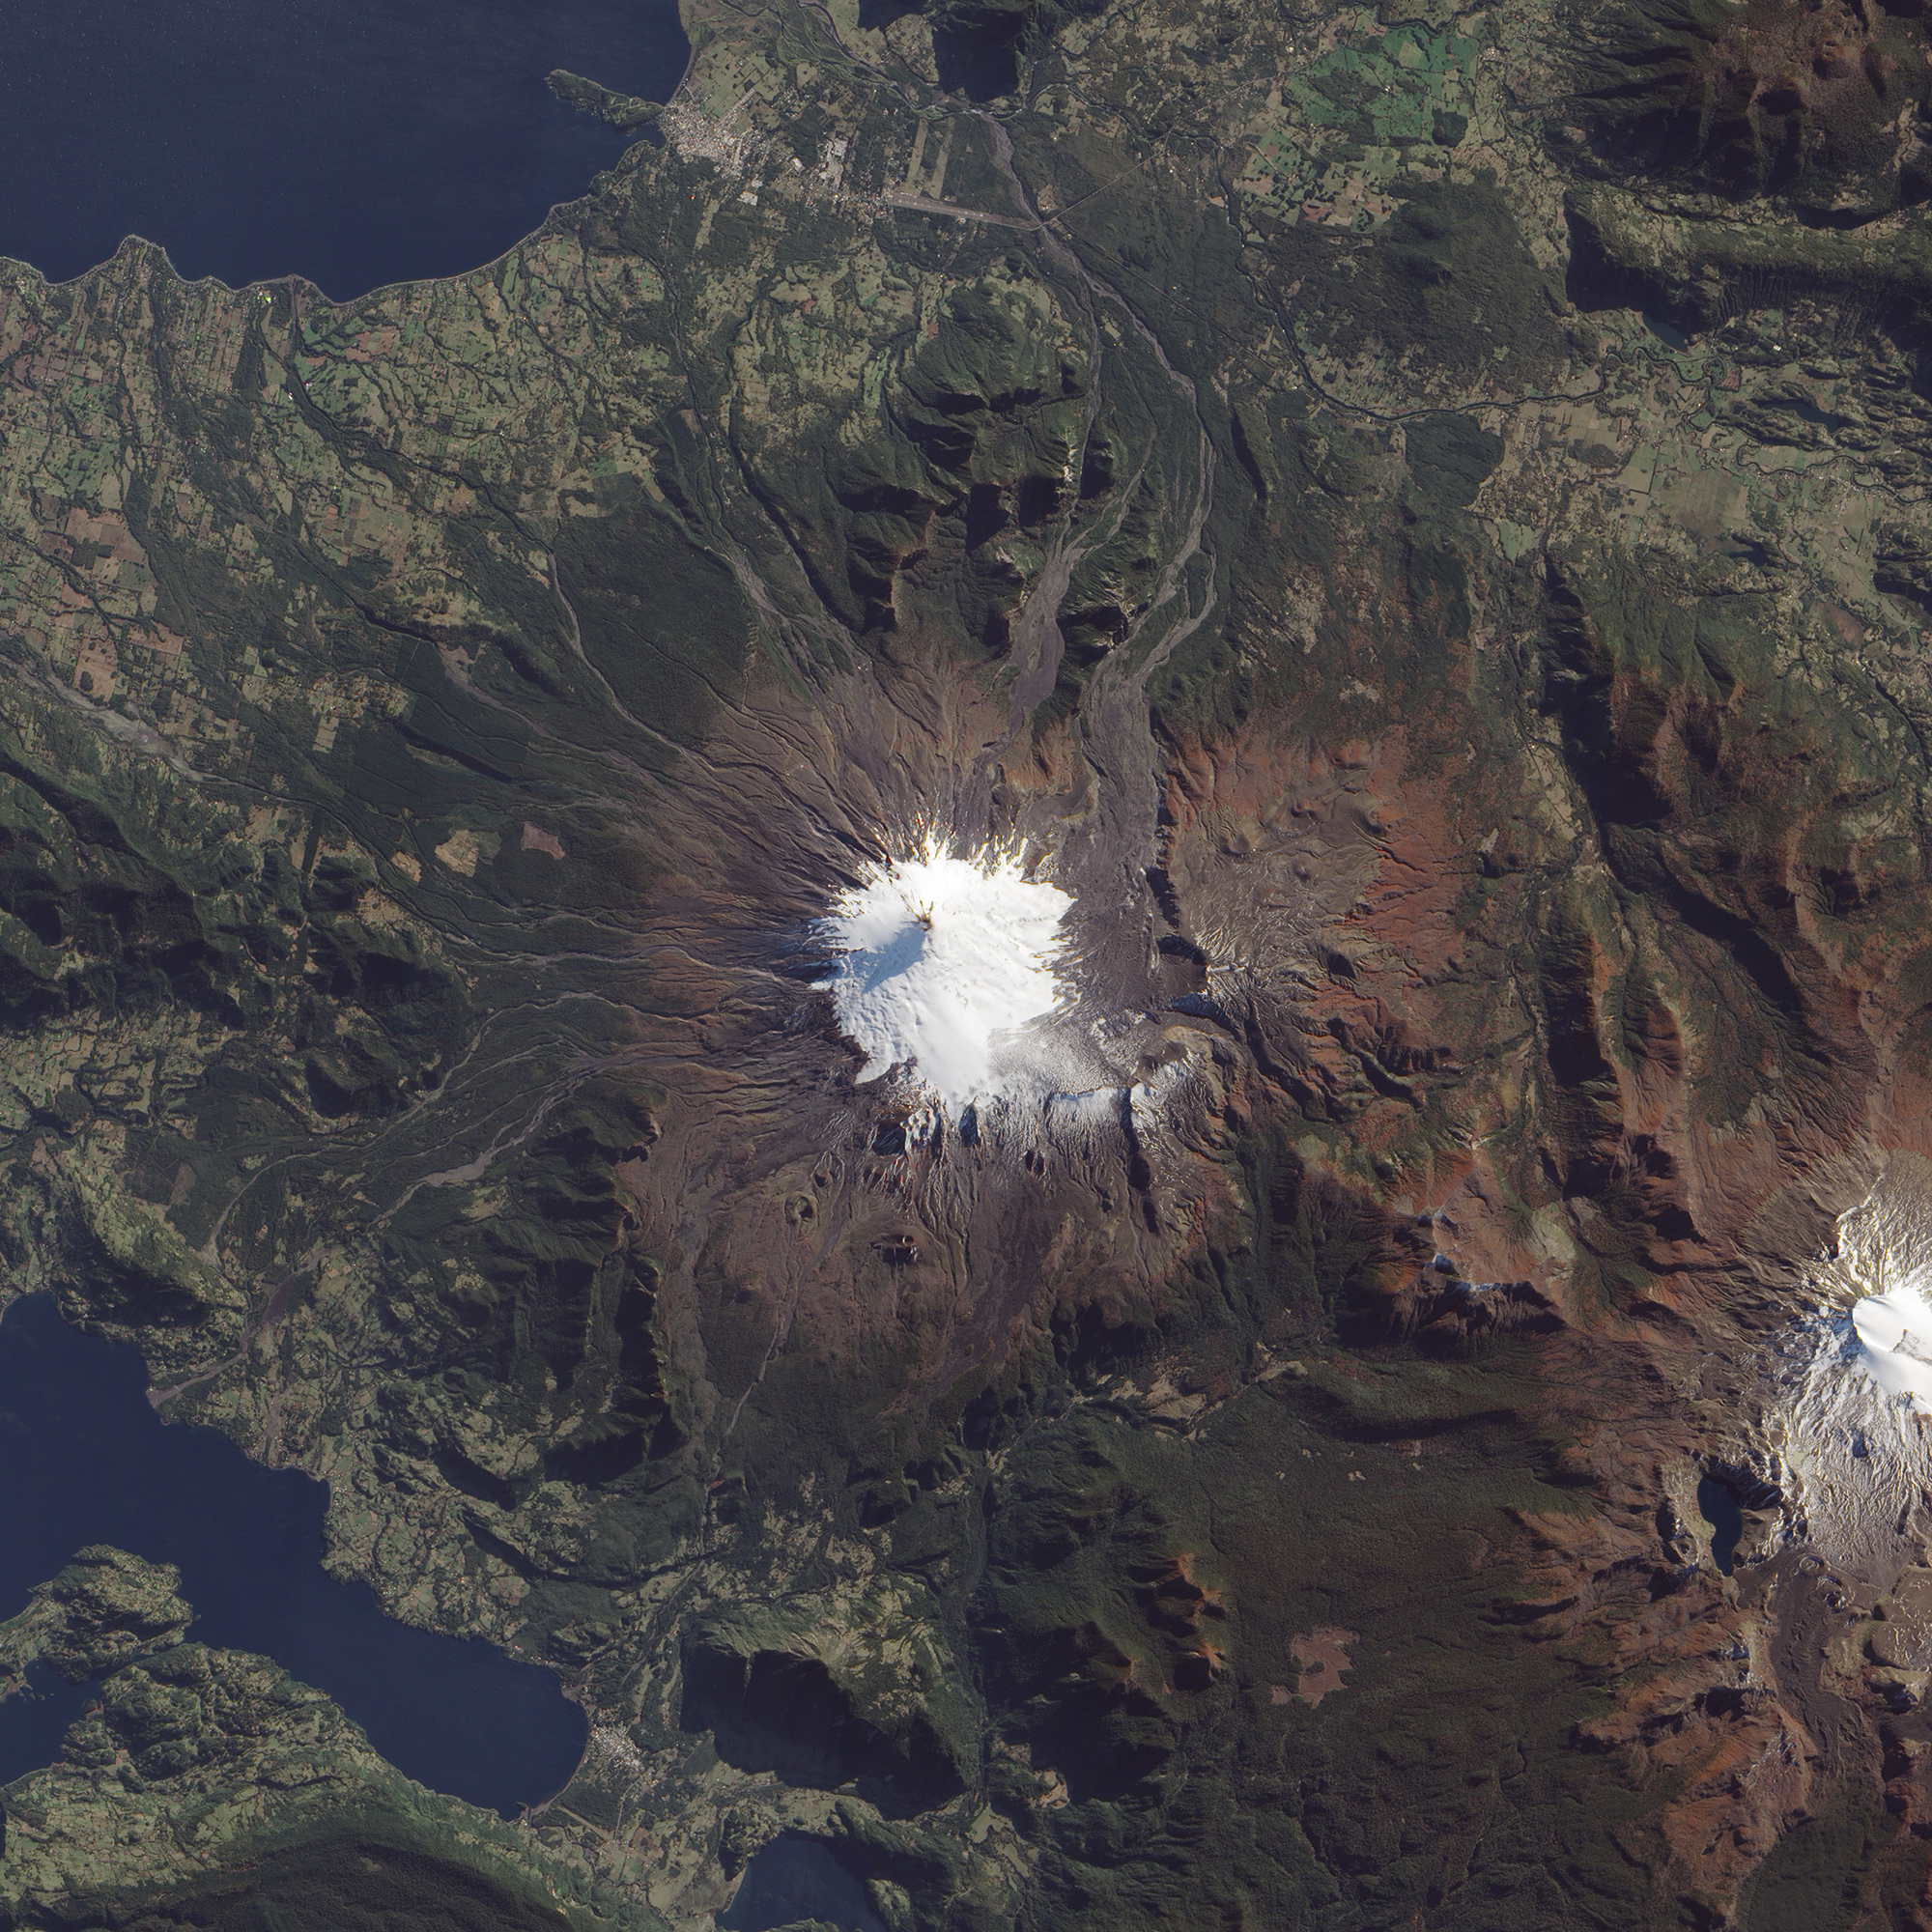 Satellite image looking down on a towering Chilean volcano, topped in snow.